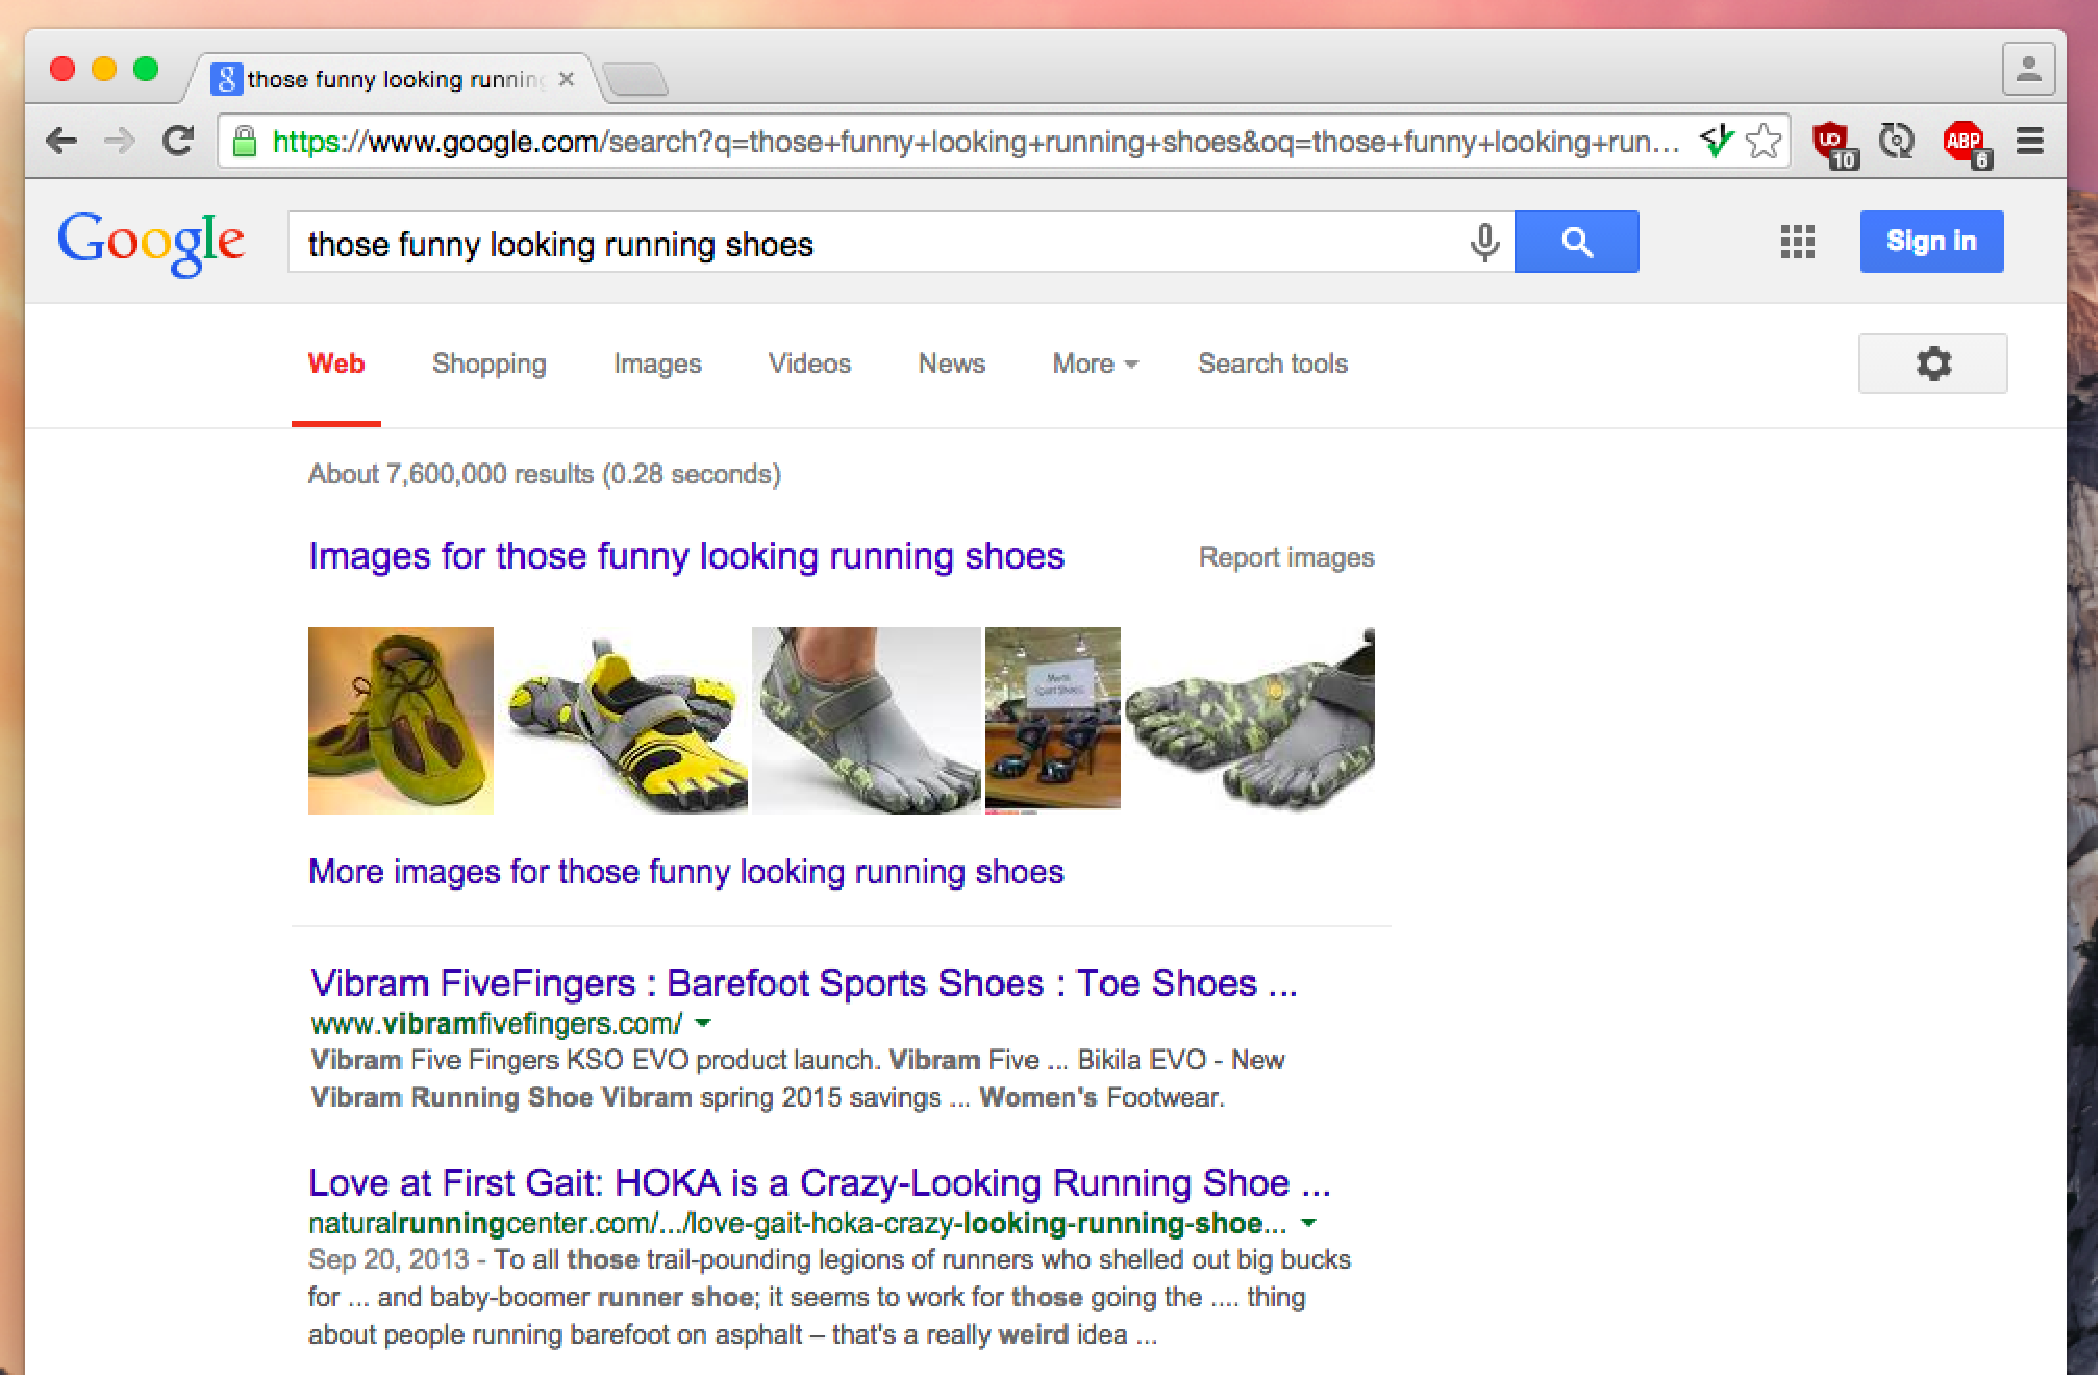 Funny looking running shoes Google search